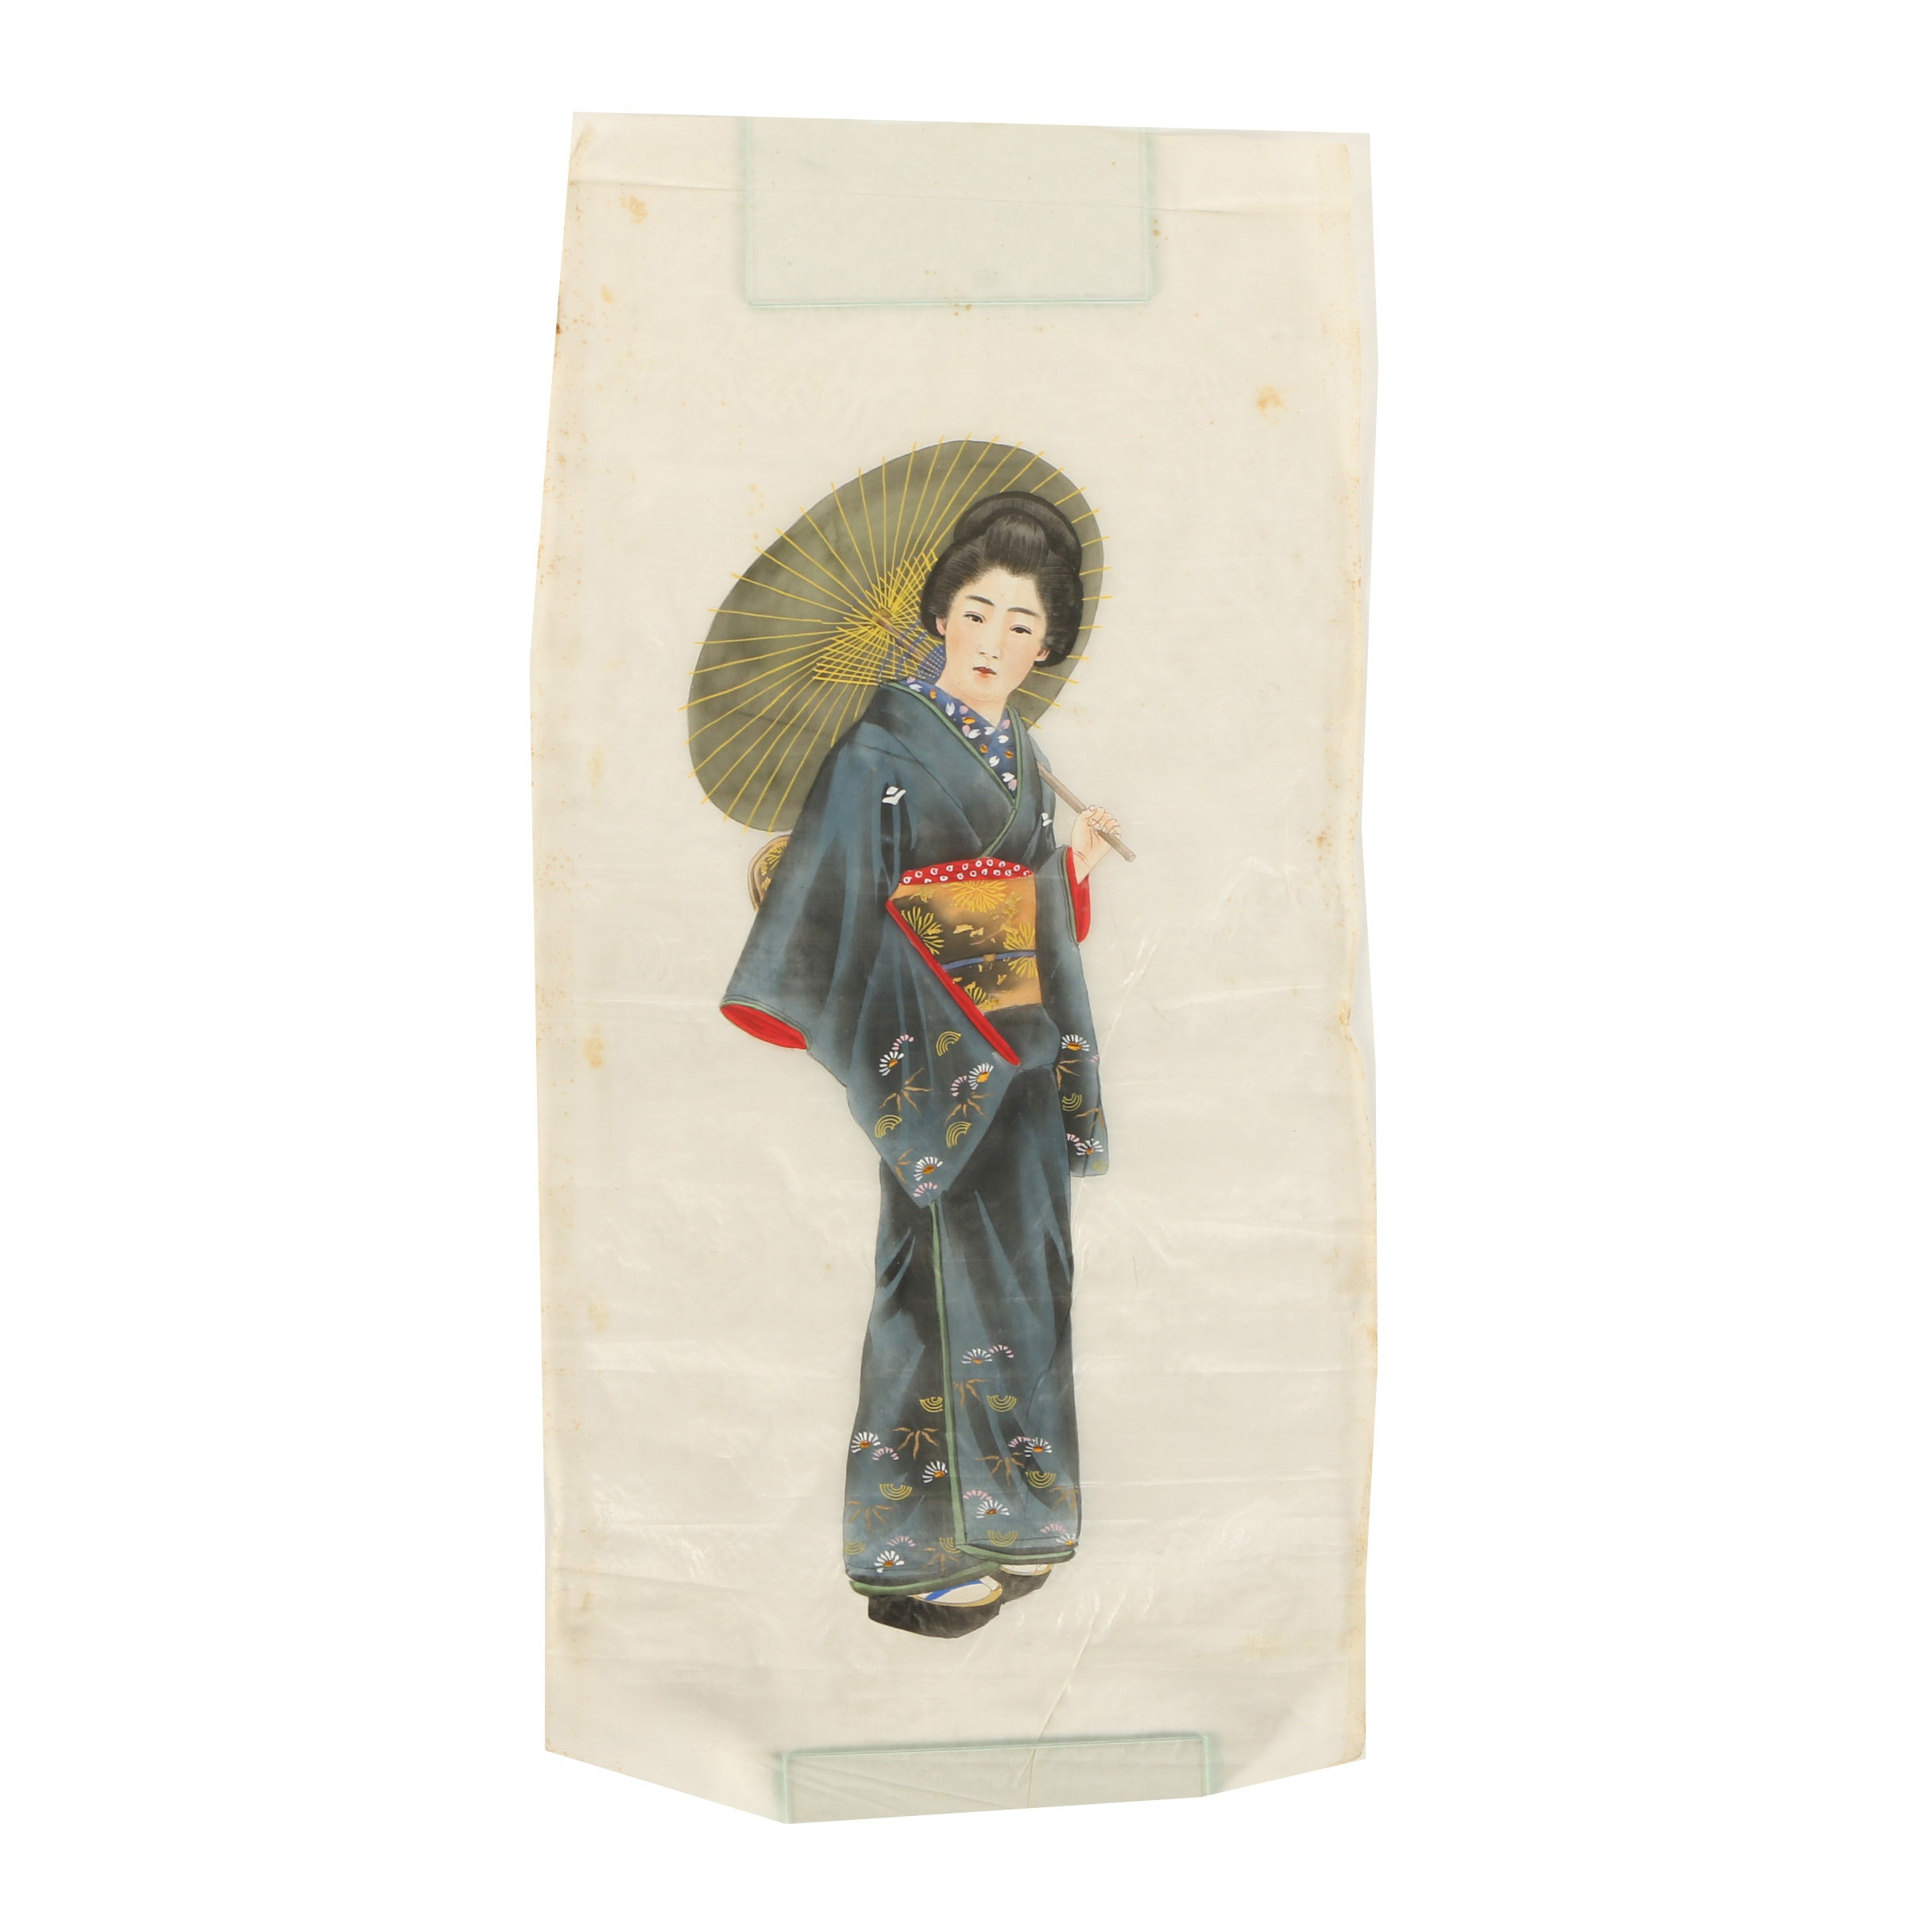 Japanese Gouache Painting of a Female Figure